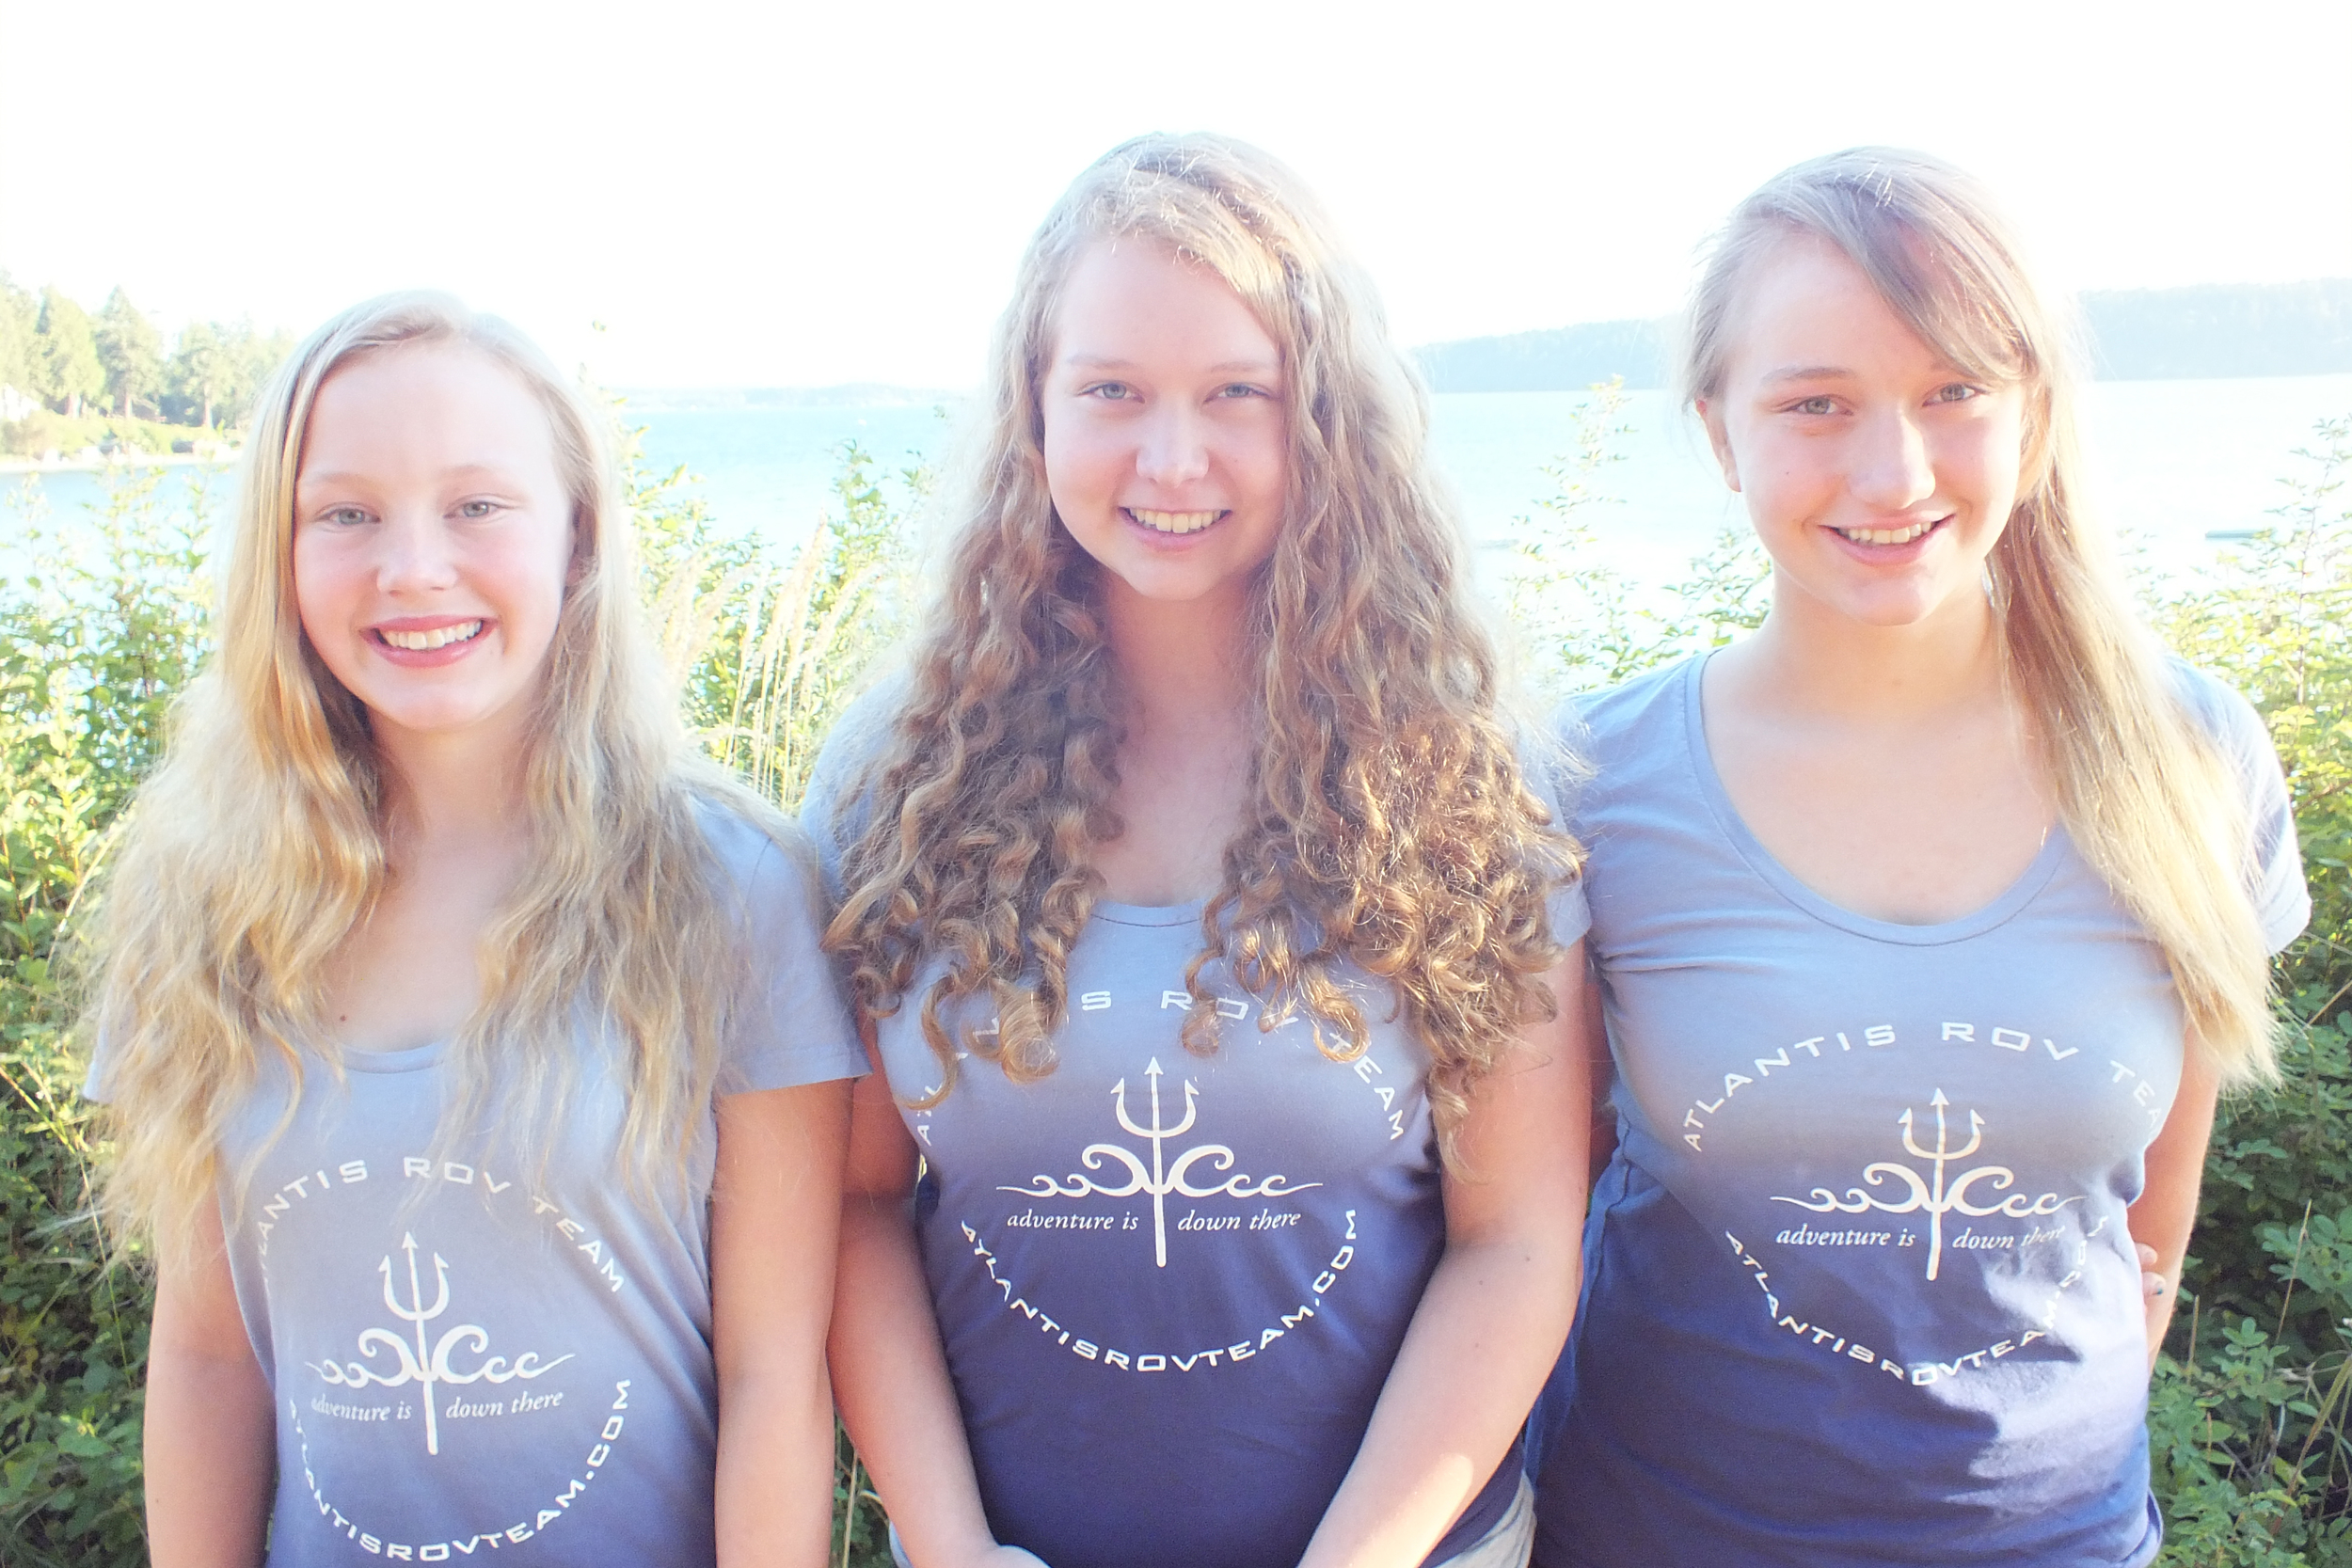 """Hannah & Haley McConnaughey, Annika Hustad, Atlantis ROV Team    Atlantis ROV Team is an award-winning underwater robotics team of middle- and high-school students from Whidbey Island. They have amassed regional, international, and professional accolades for their successes at competition and for STEM outreach. This August, the all-girl team of Hannah, Haley, and Annika, won the Black Sea International ROV (Remotely Operated Vehicle) Competition in Constanta, Romania in the high school division.     With a deep commitment to """"paying it forward"""", they have reached hundreds of people with STEM outreach over five years: as exhibitors and workshop presenters at the Sally Ride Science Festival, as the youngest presenters ever selected to host Seattle Science Festival Signature Events, in partnership with the Sea Scouts on the tall ship Odyssey, and as the multiple year winners of the People's Choice award for their hands-on robotics exhibits at the Whidbey Area Fair. Atlantis has garnered allocates from the Seattle Times to the Washington Post."""